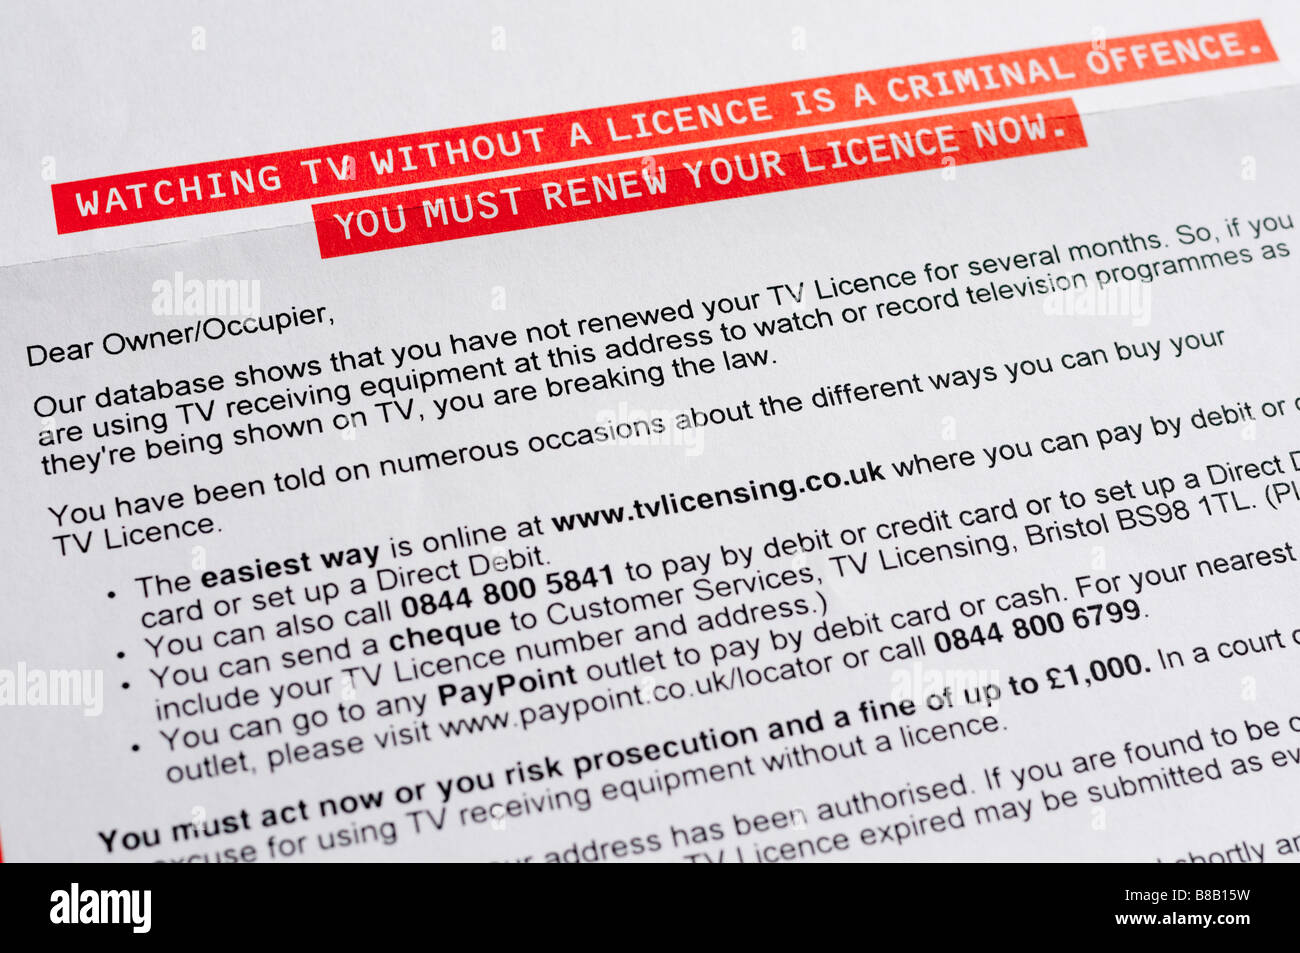 Letter from UK TV Licencing warning about criminal/legal proceedings if licence is not purchased. - Stock Image